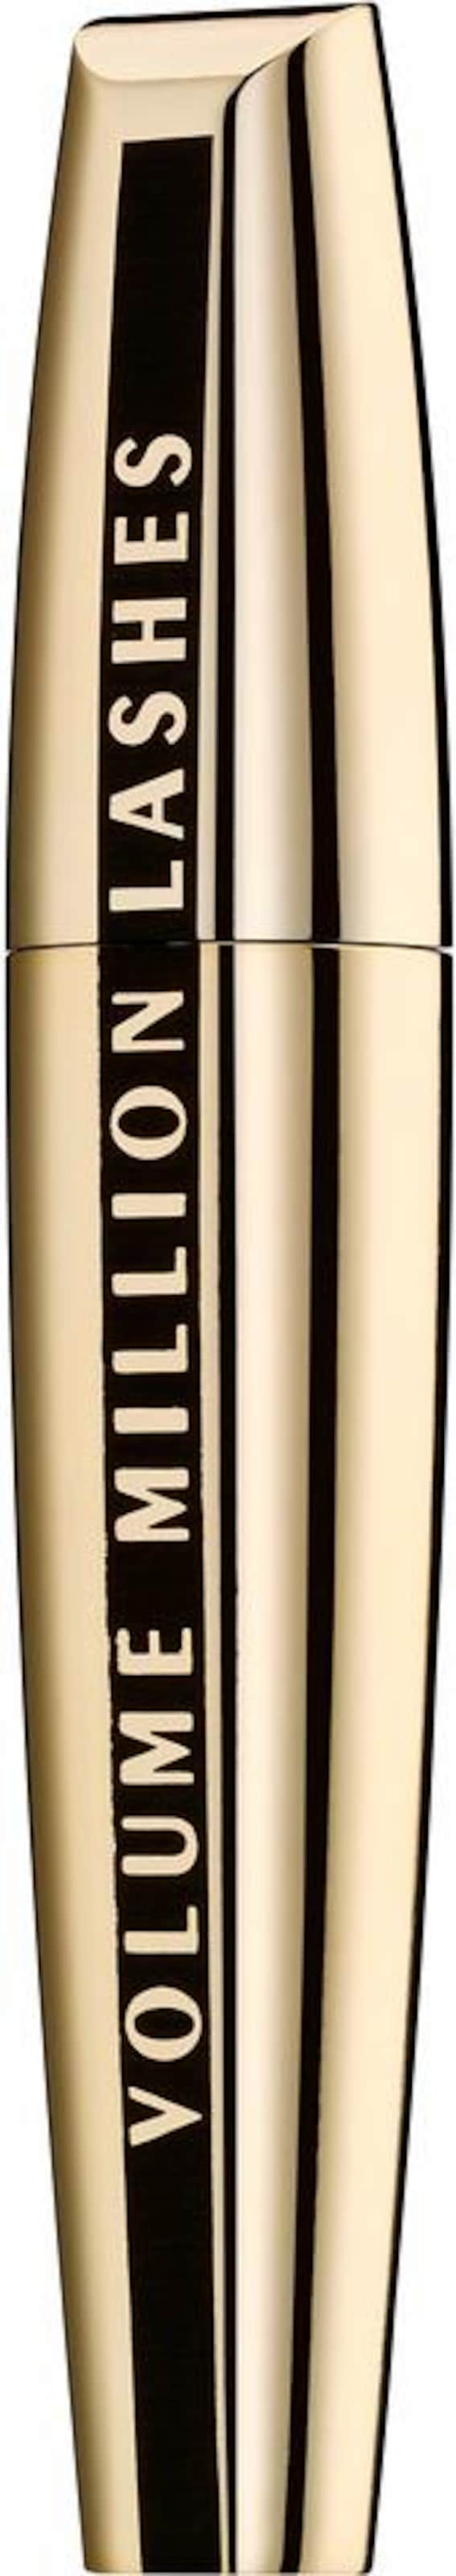 L'Oréal Paris 'Volume Million Lashes', Mascara